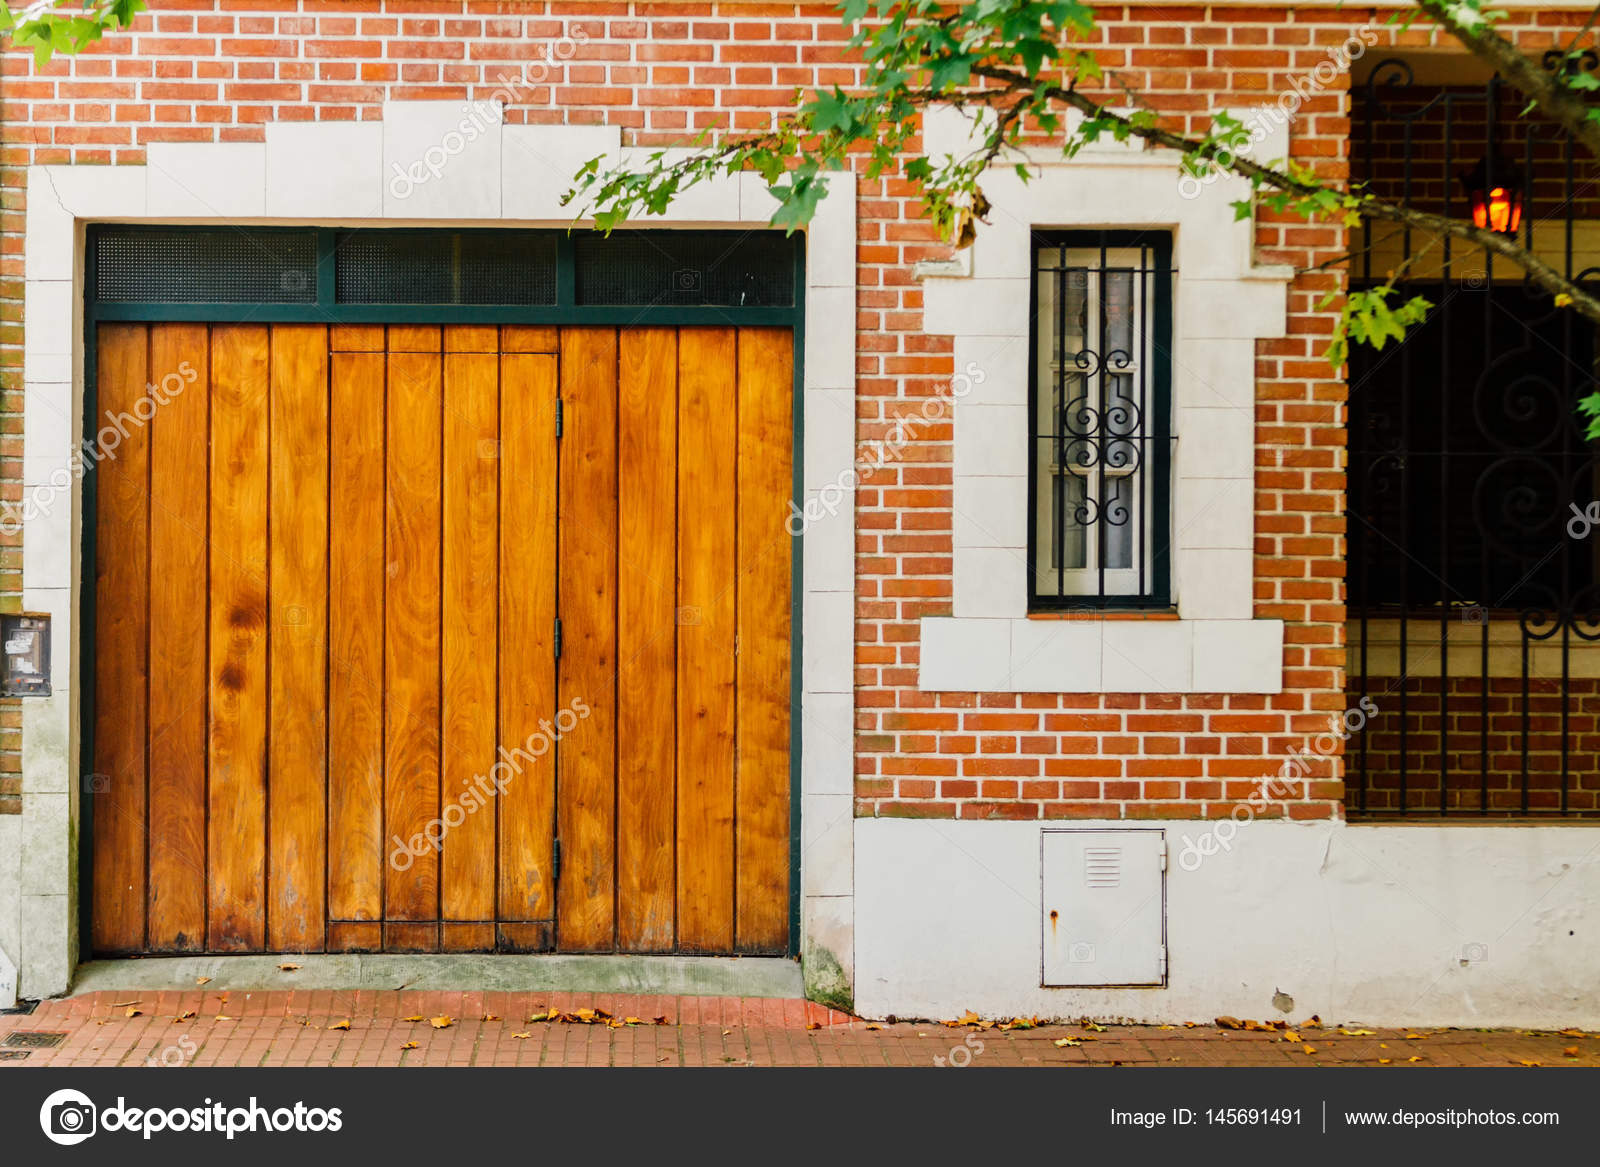 Wooden Gate With Window At The Entrance Of A House Stock Photo